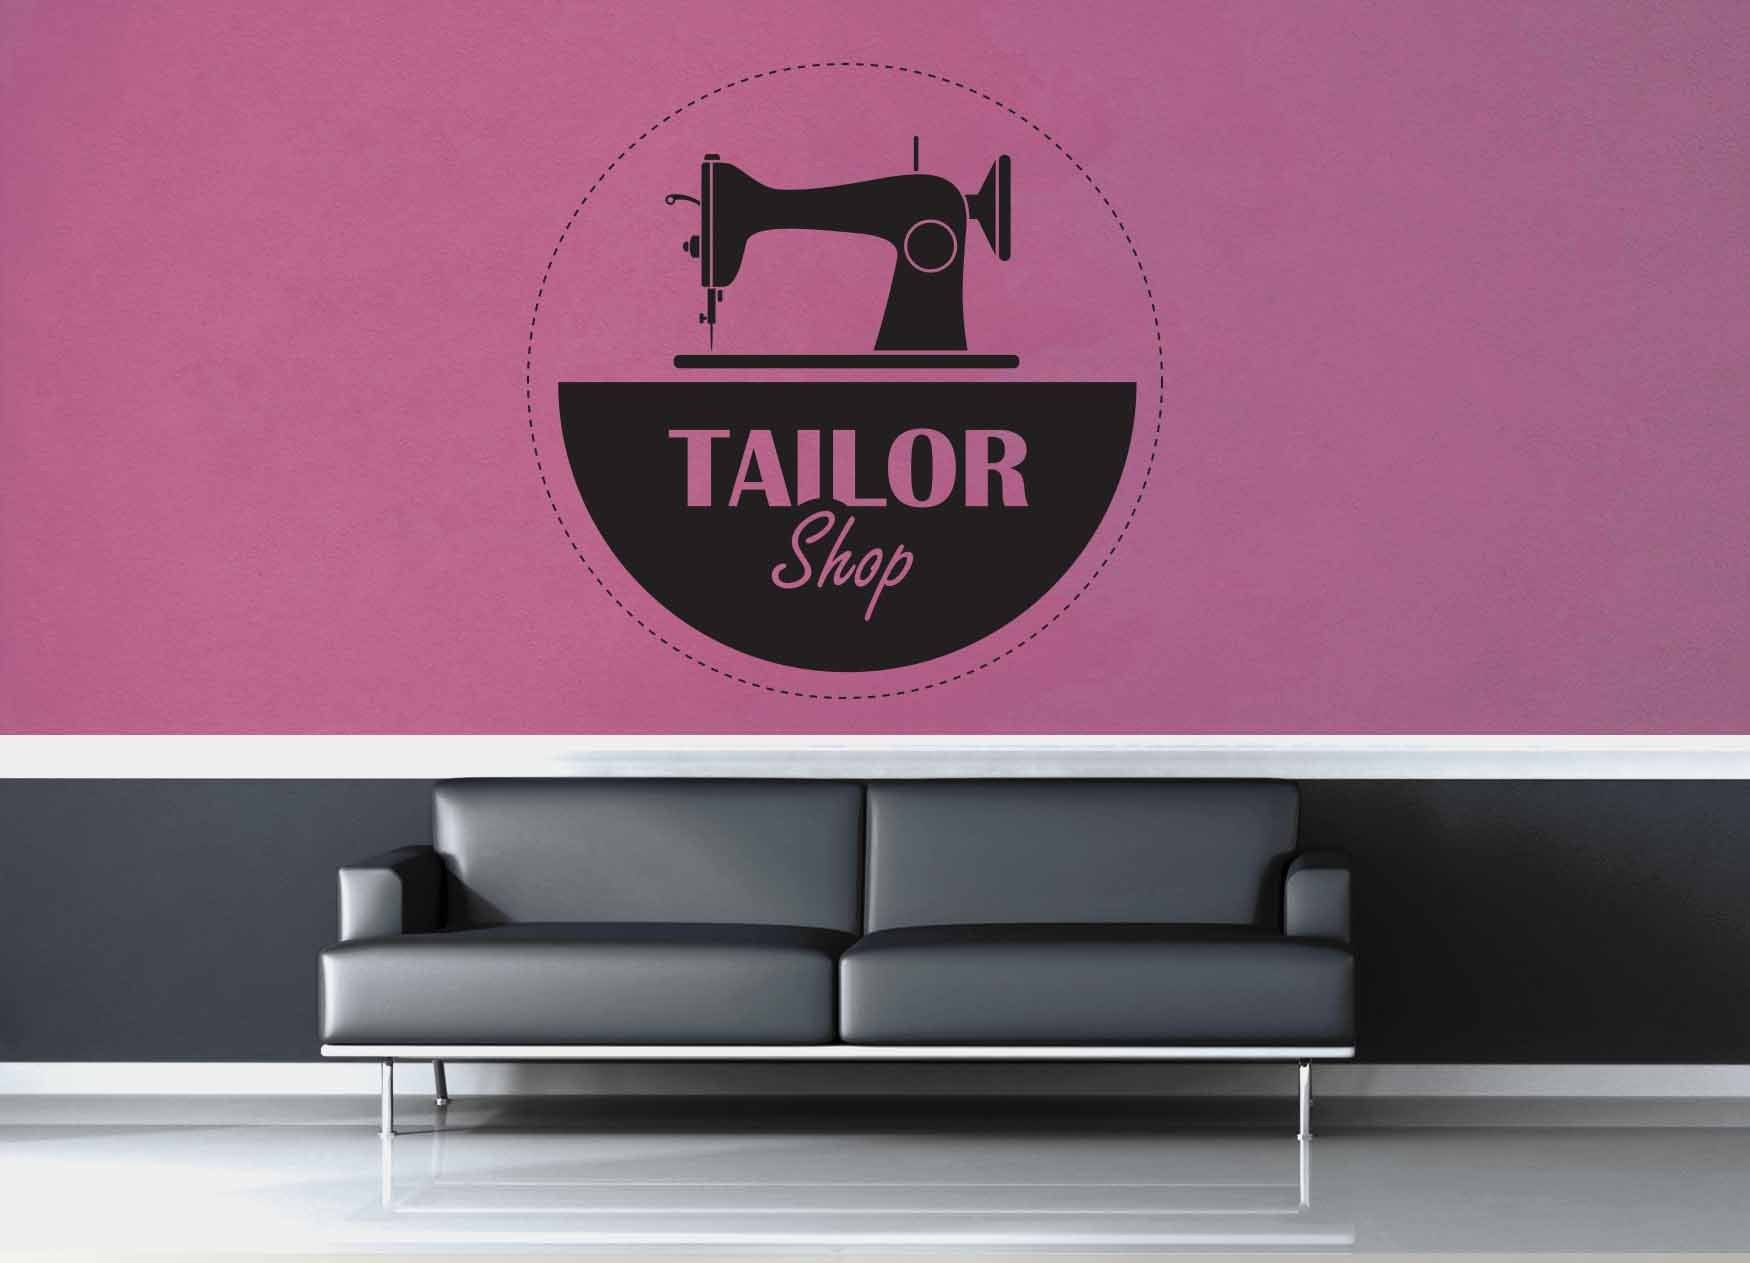 Sewing Machine Tailor Shop Sign - Wall Decal